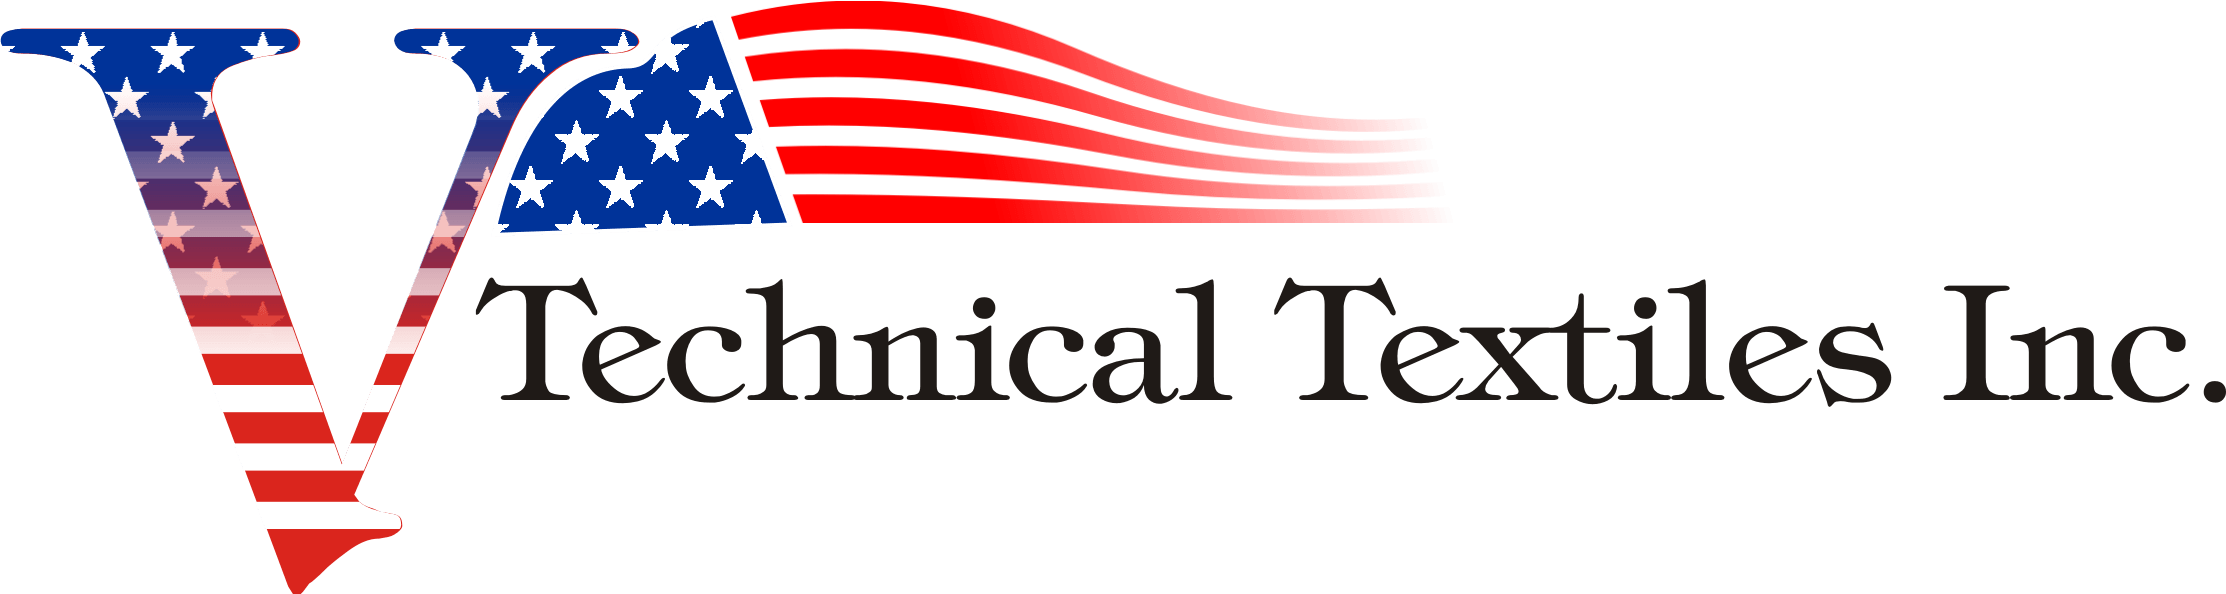 technical textiles examples